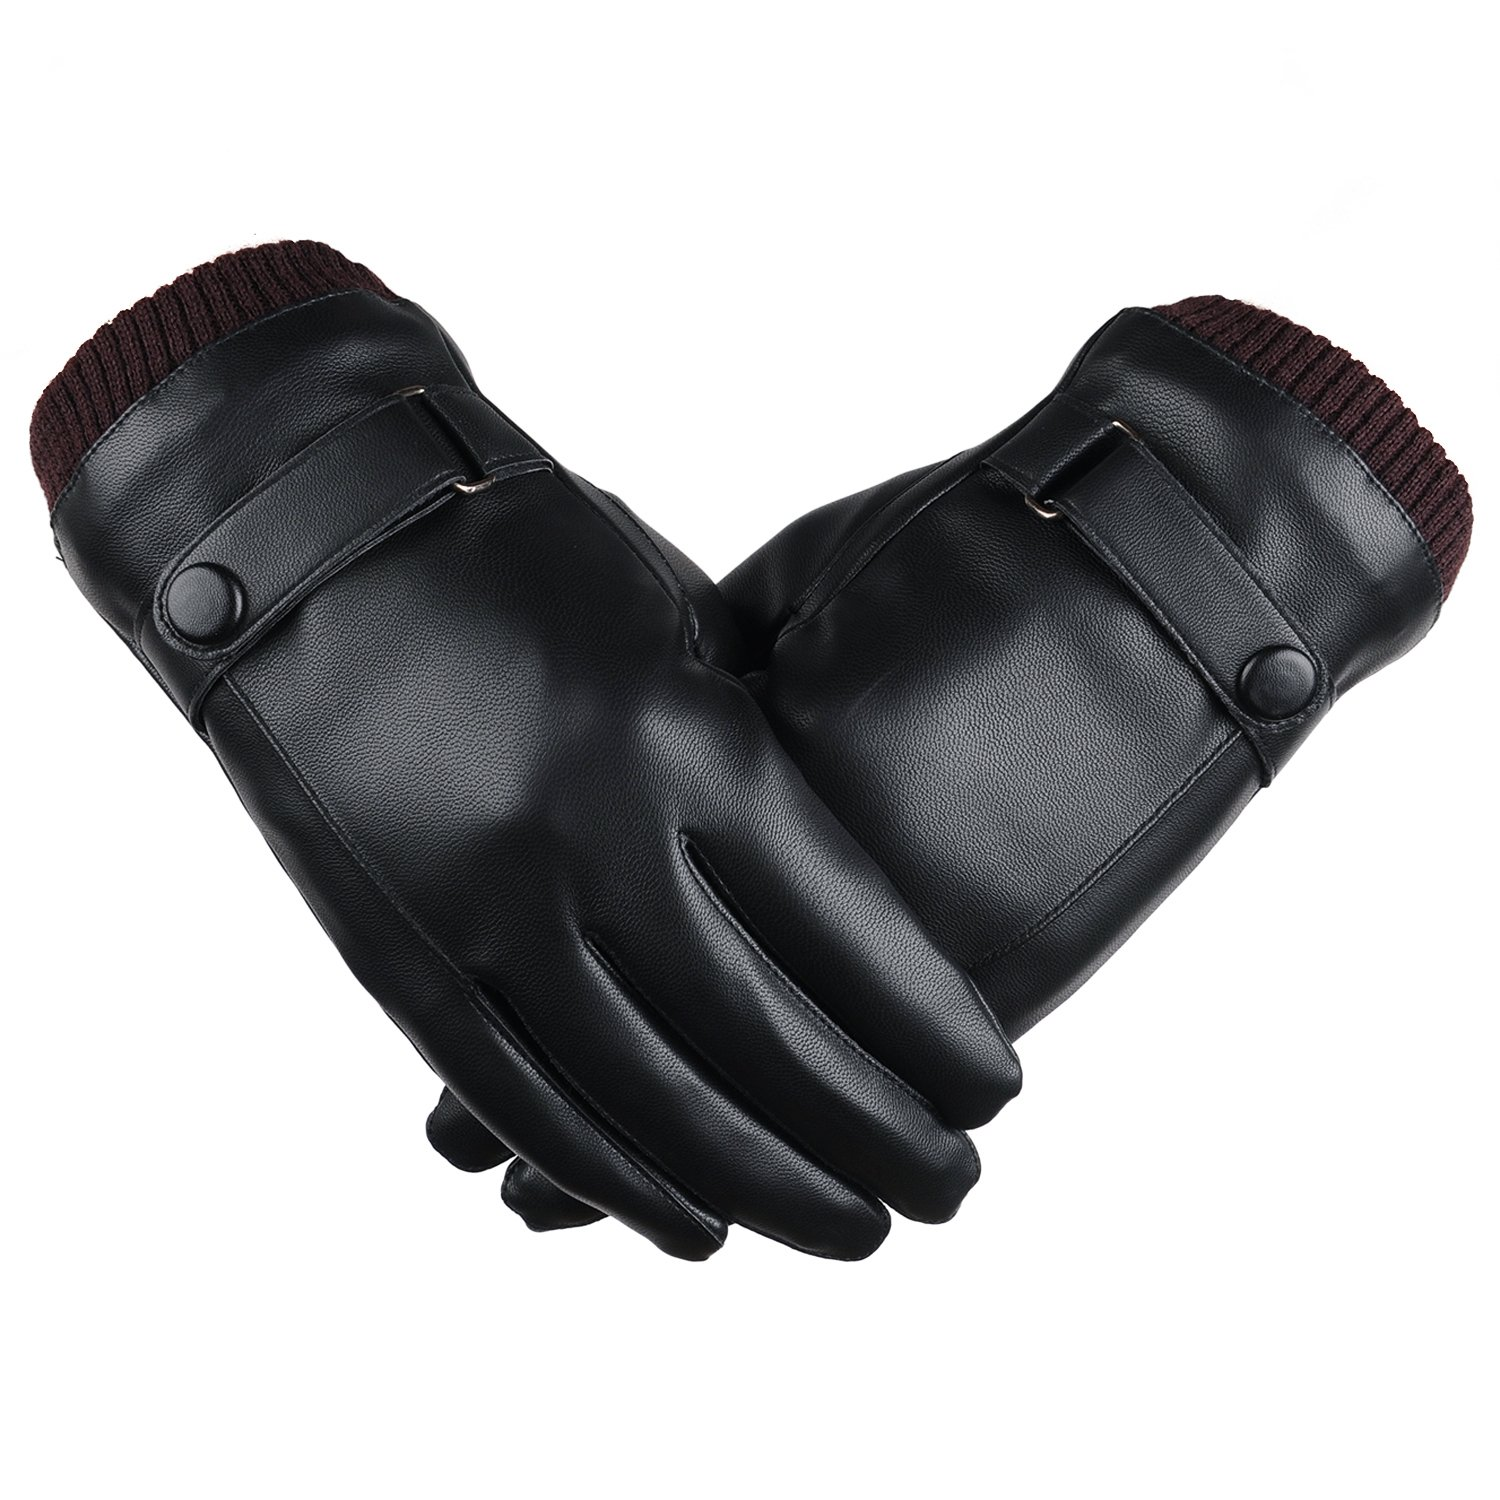 ANVEY Mens PU Leather Gloves Super Warm Touchscreen Winter Driving Gloves Cashmere (black)